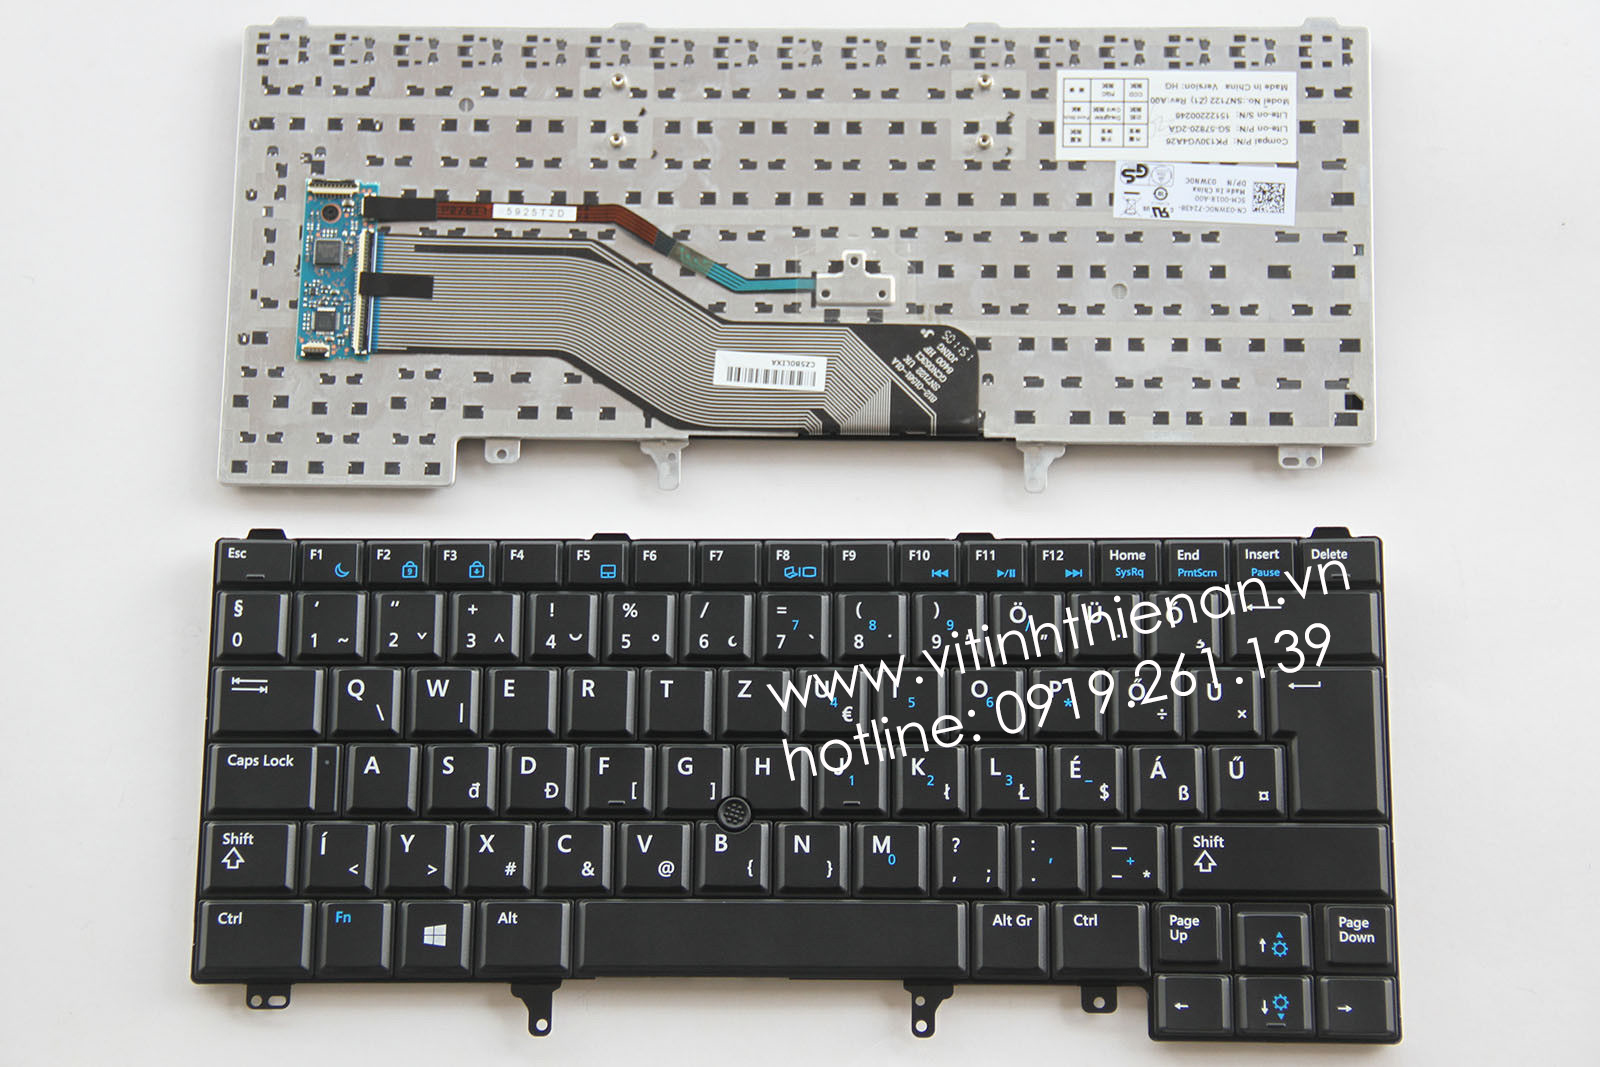 ban-phim-laptop-dell-latitude-e6420-721